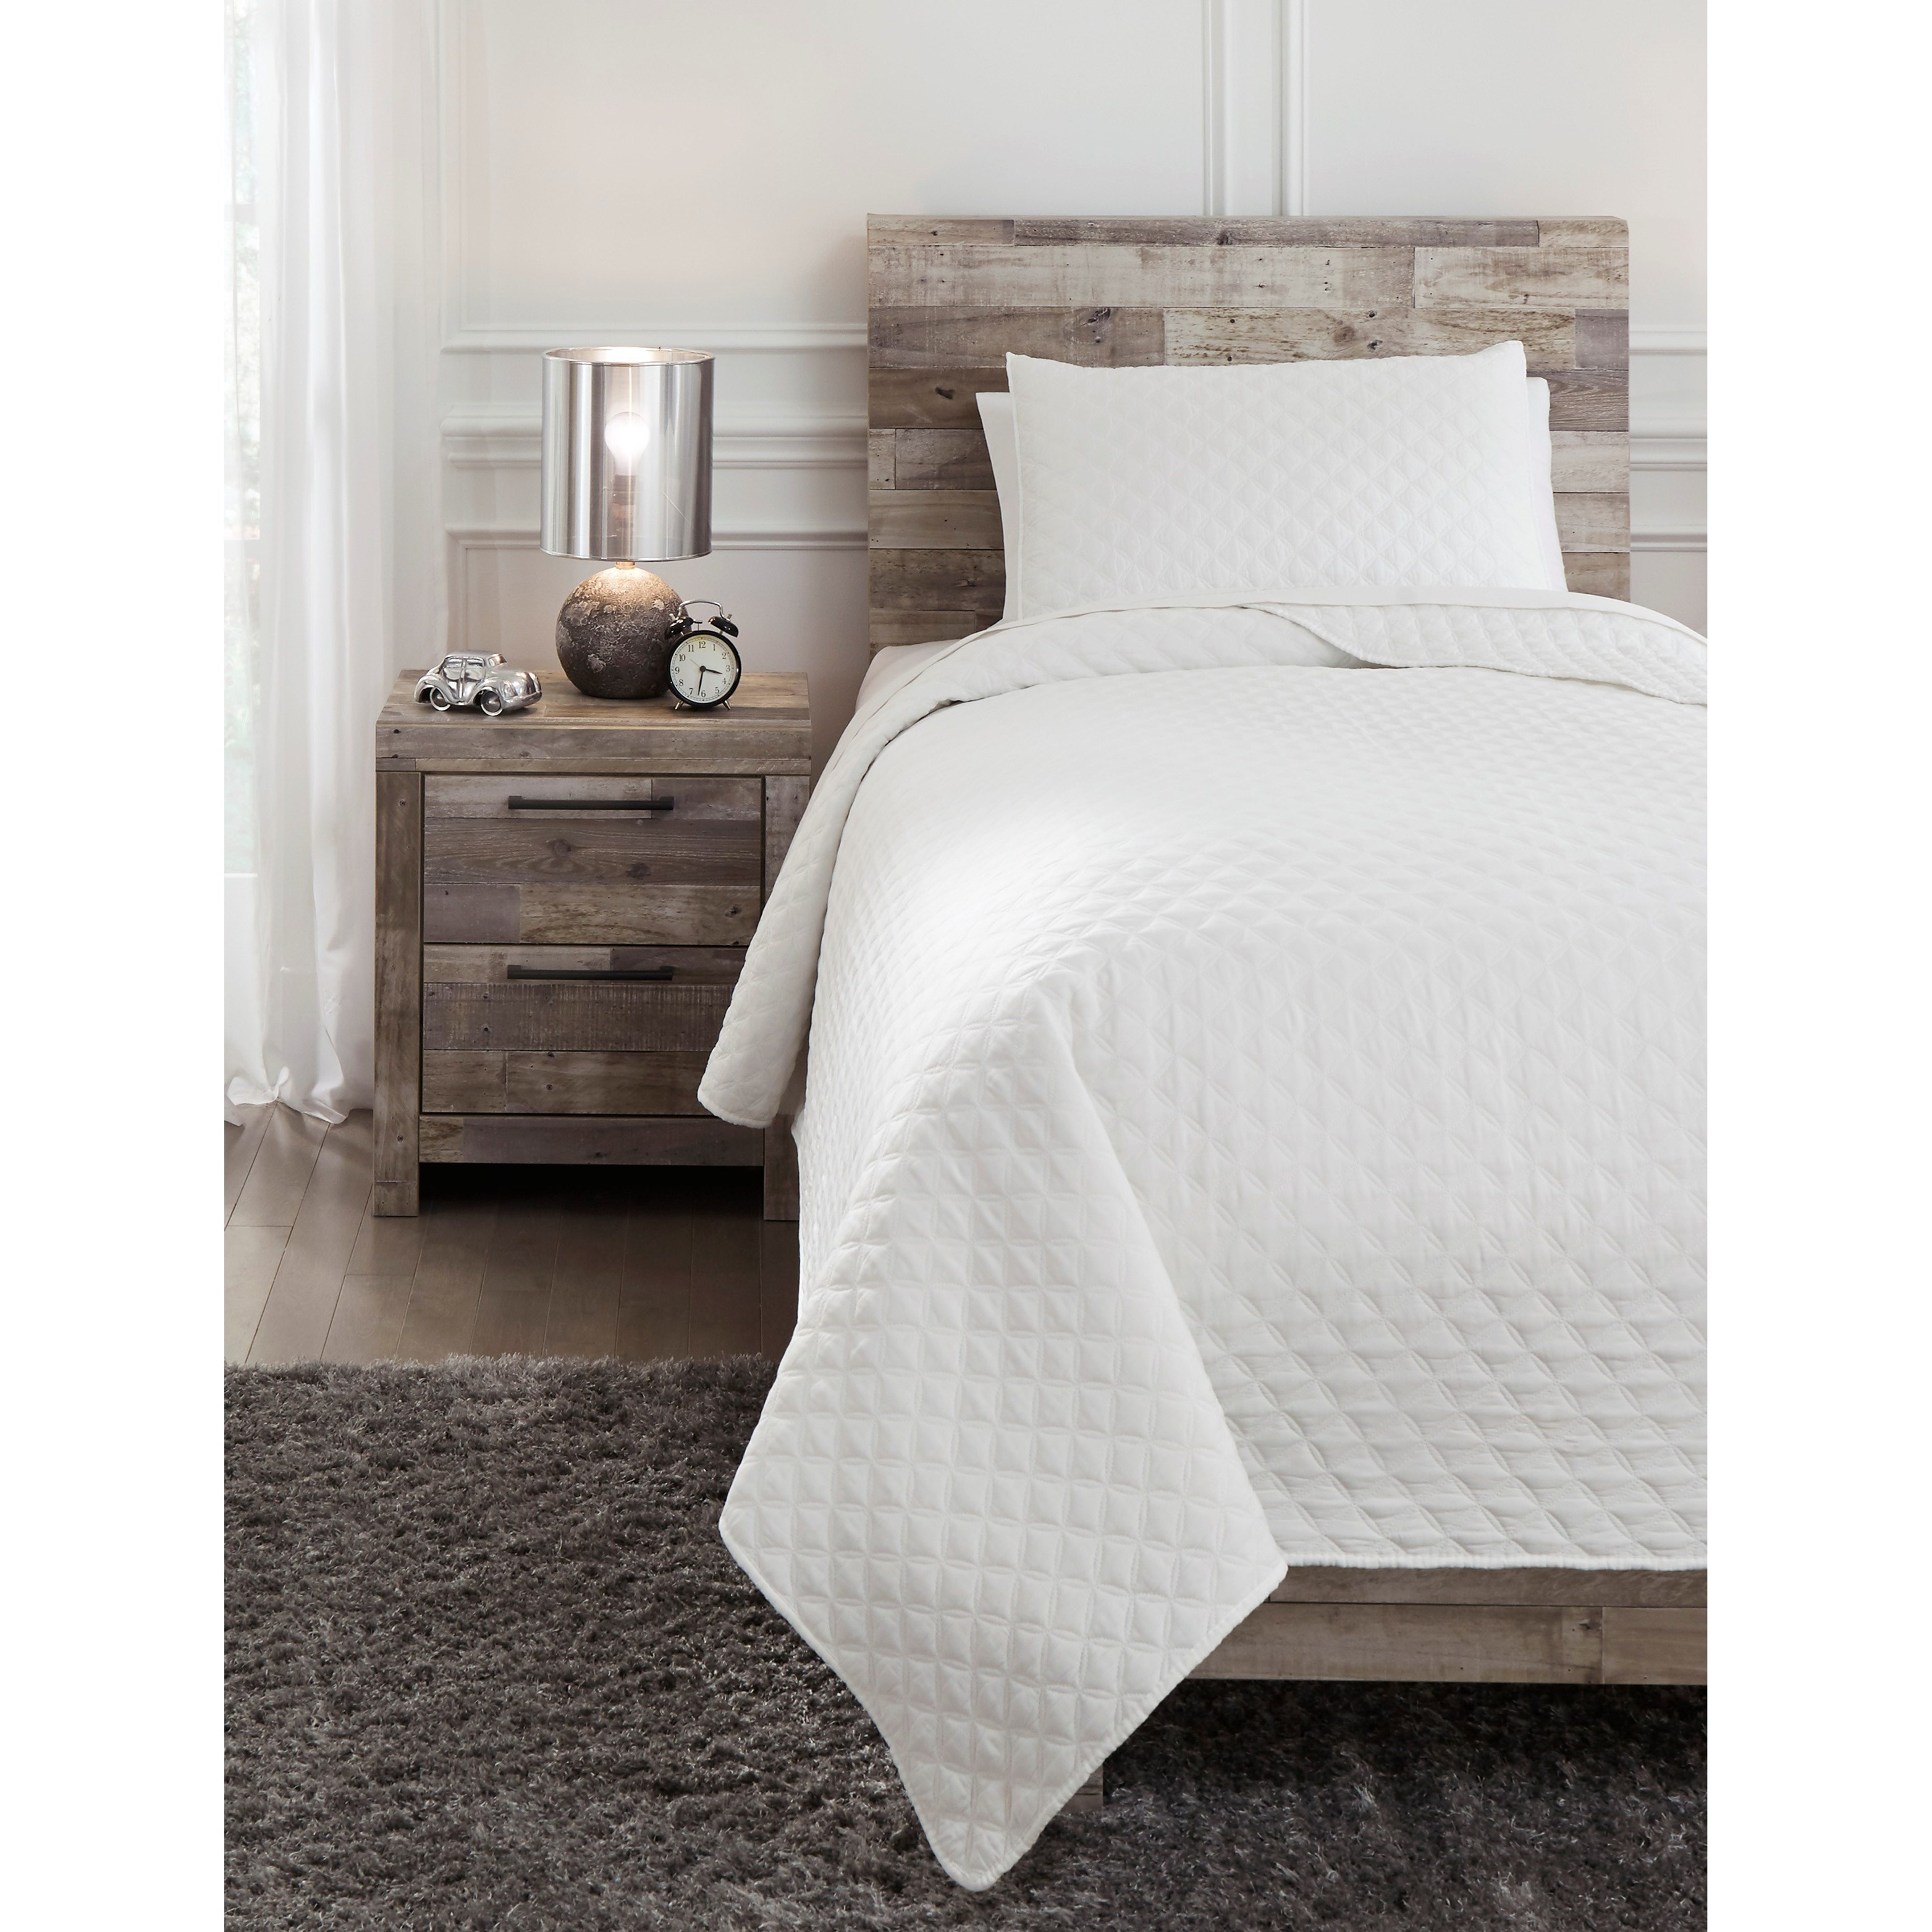 Bedding Sets Twin Ryter White Coverlet Set by Signature Design by Ashley at Northeast Factory Direct